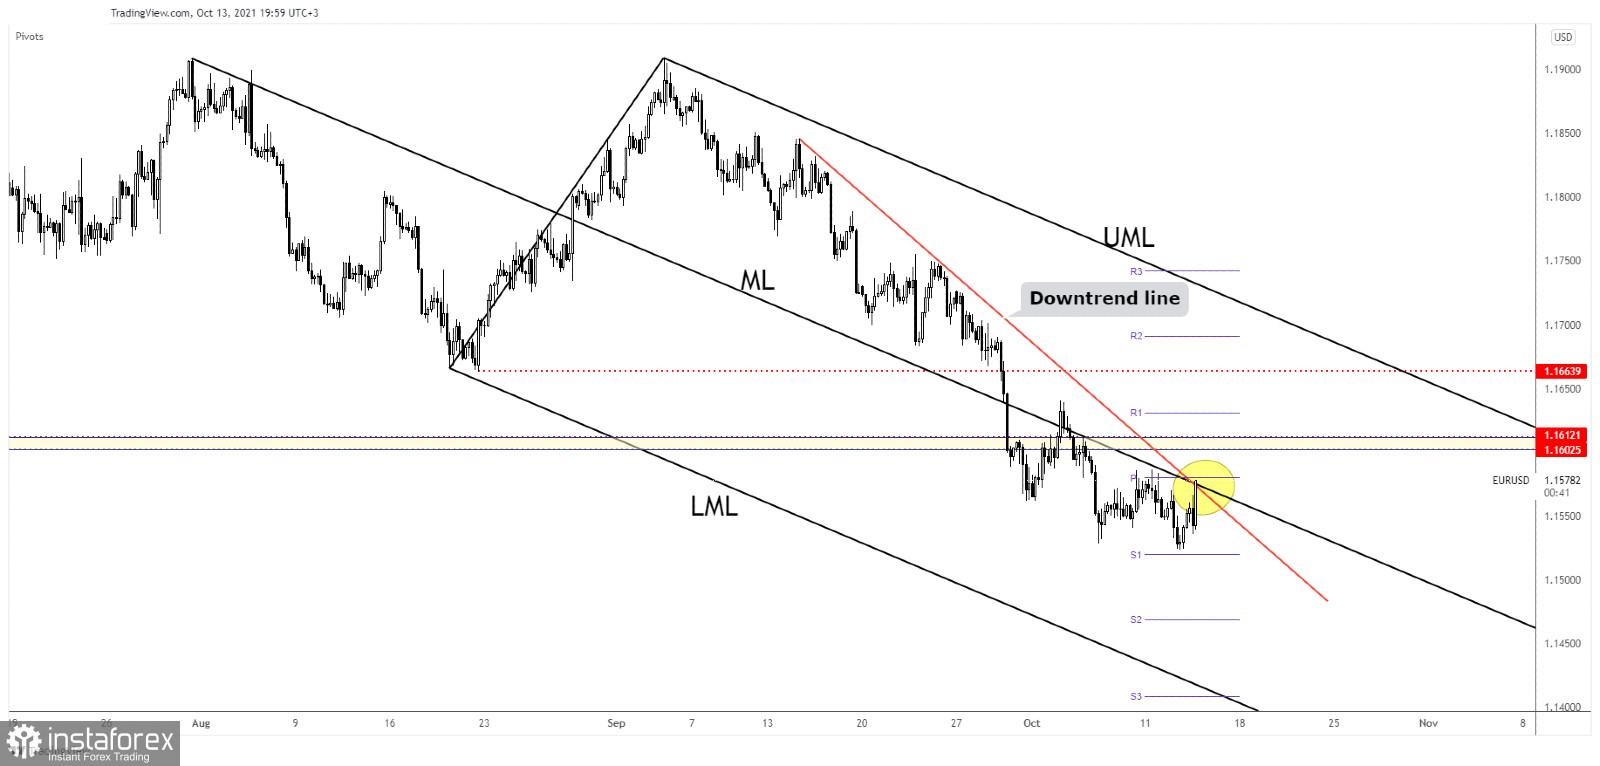 EUR/USD challenges confluence area before FOMC minutes